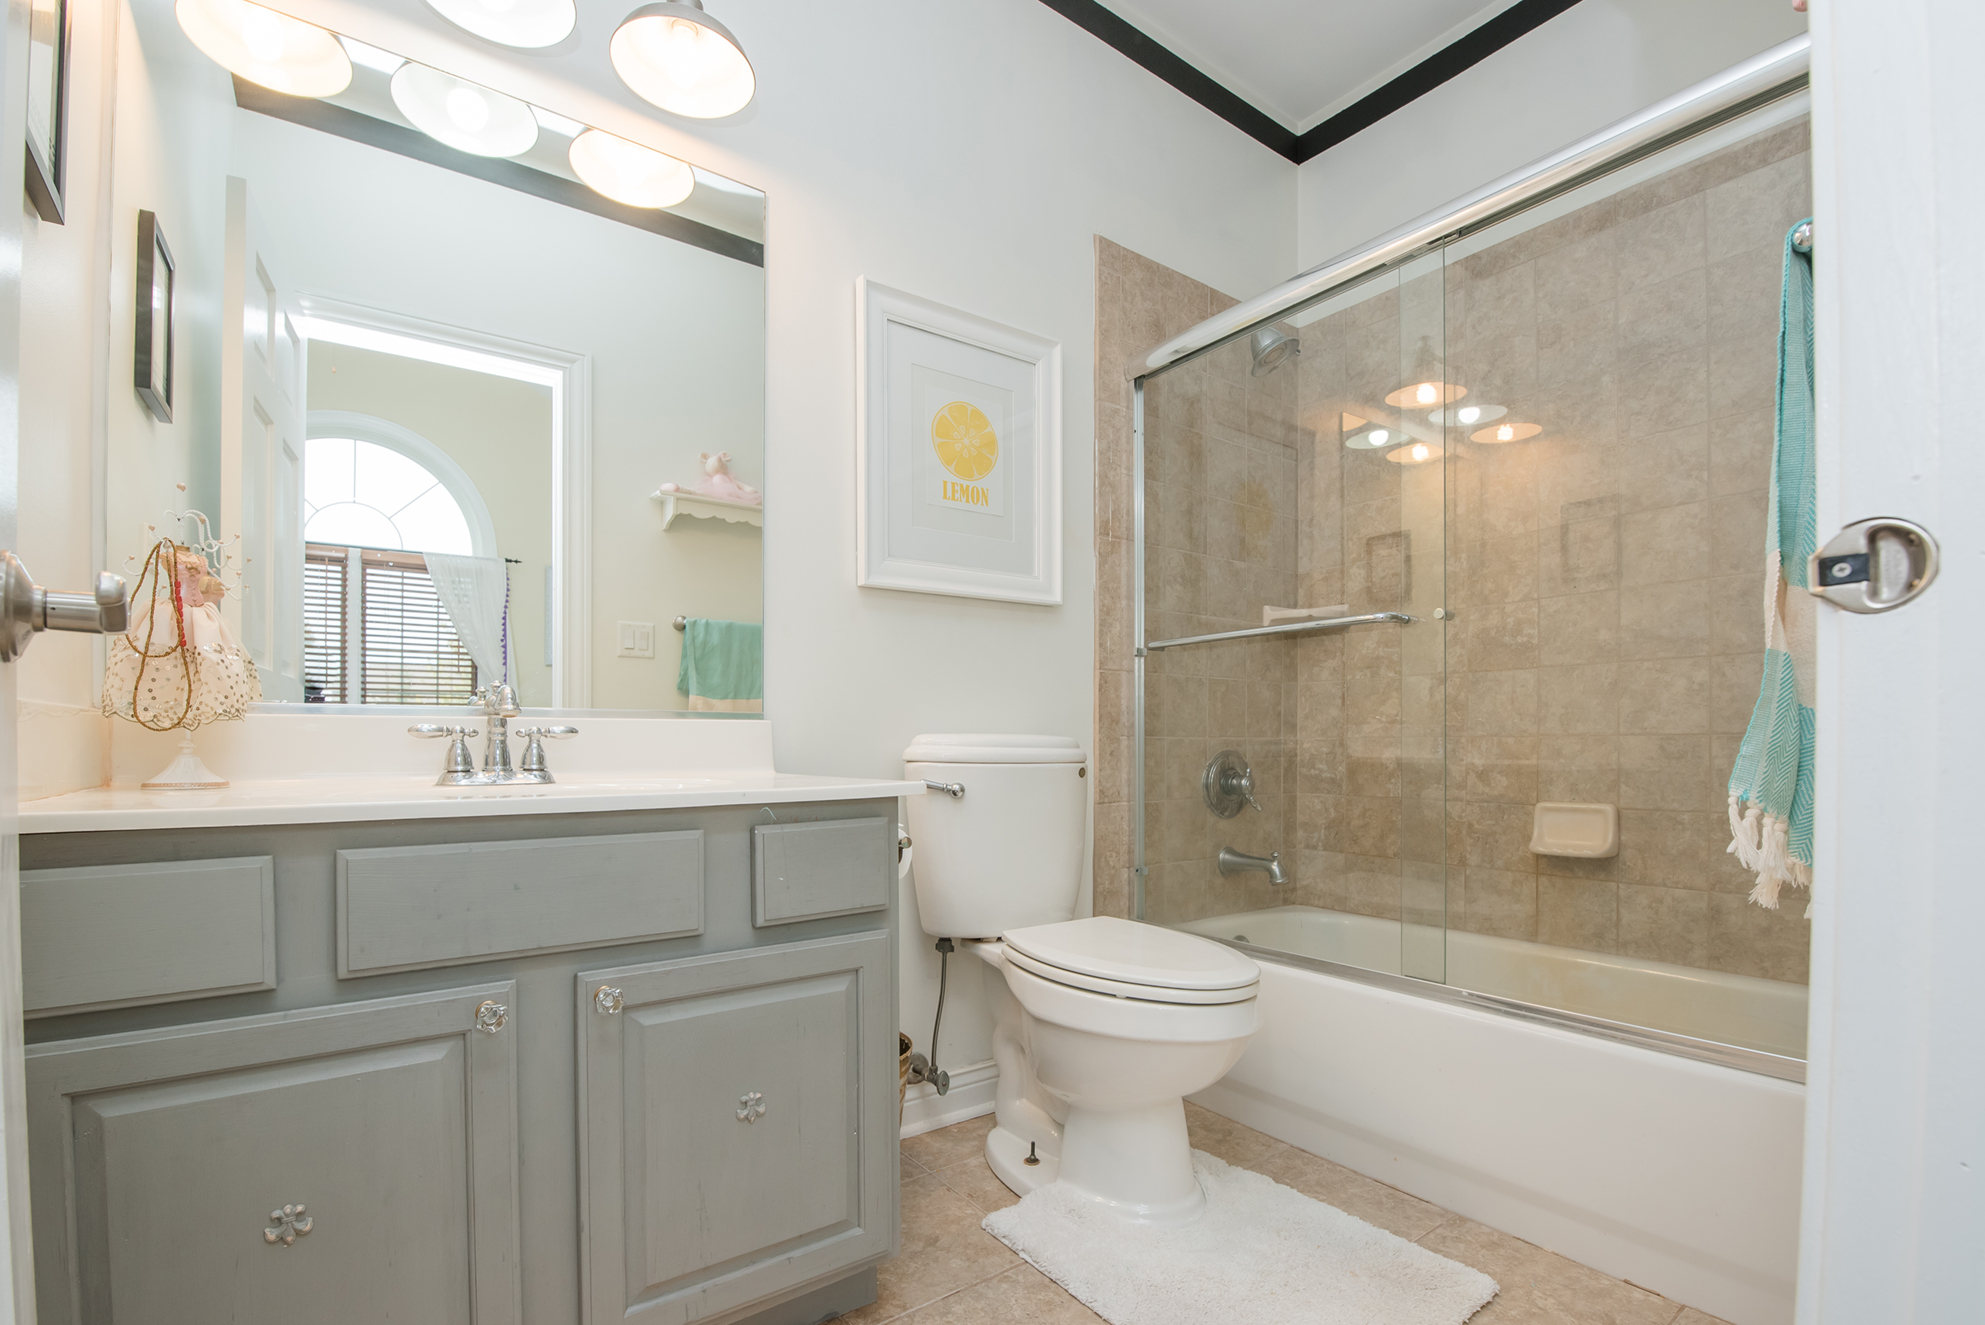 Real Estate Photography of Bathroom